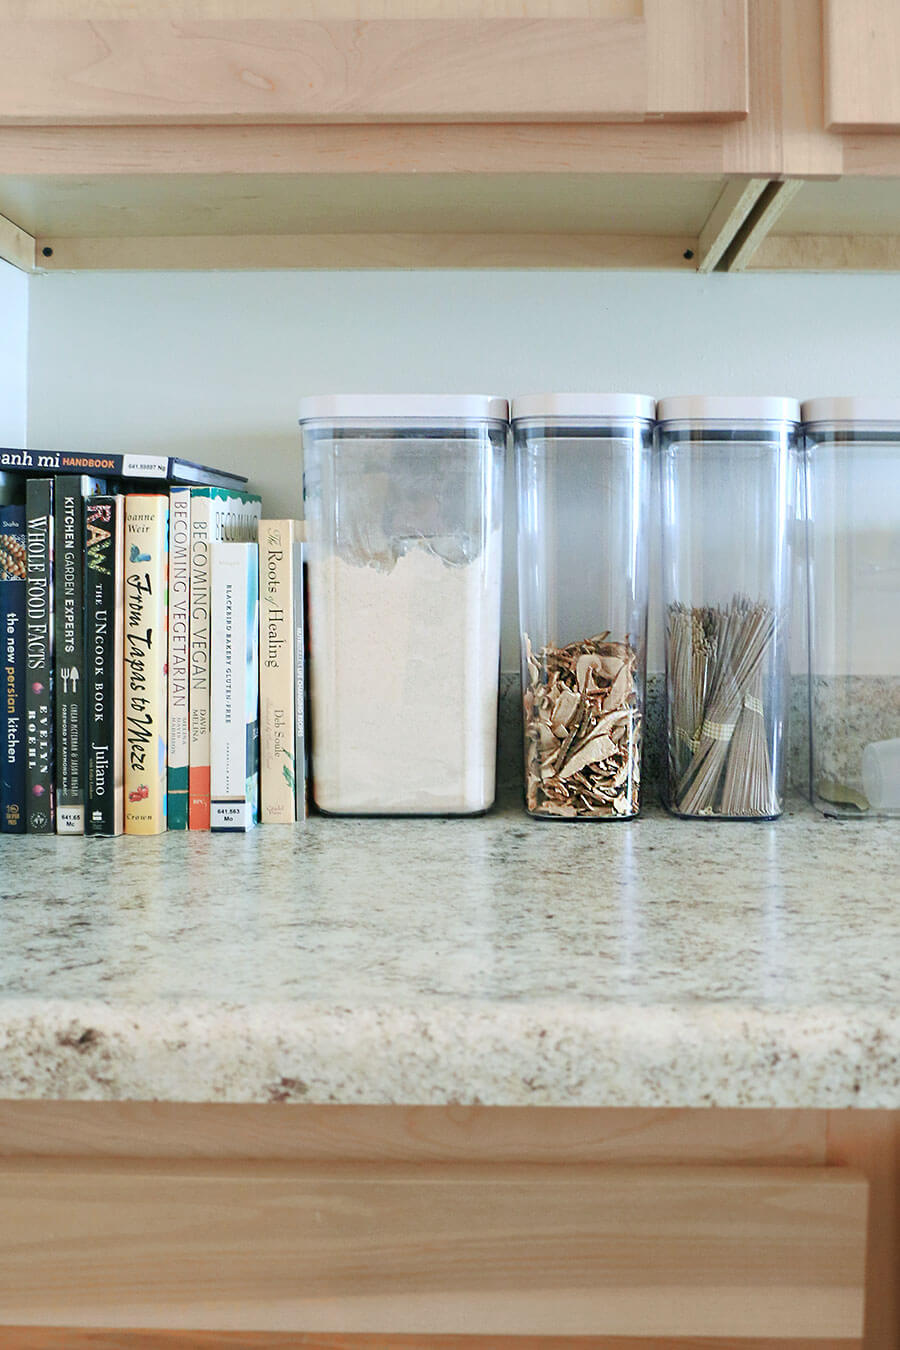 Kitchen-food-storage-containers